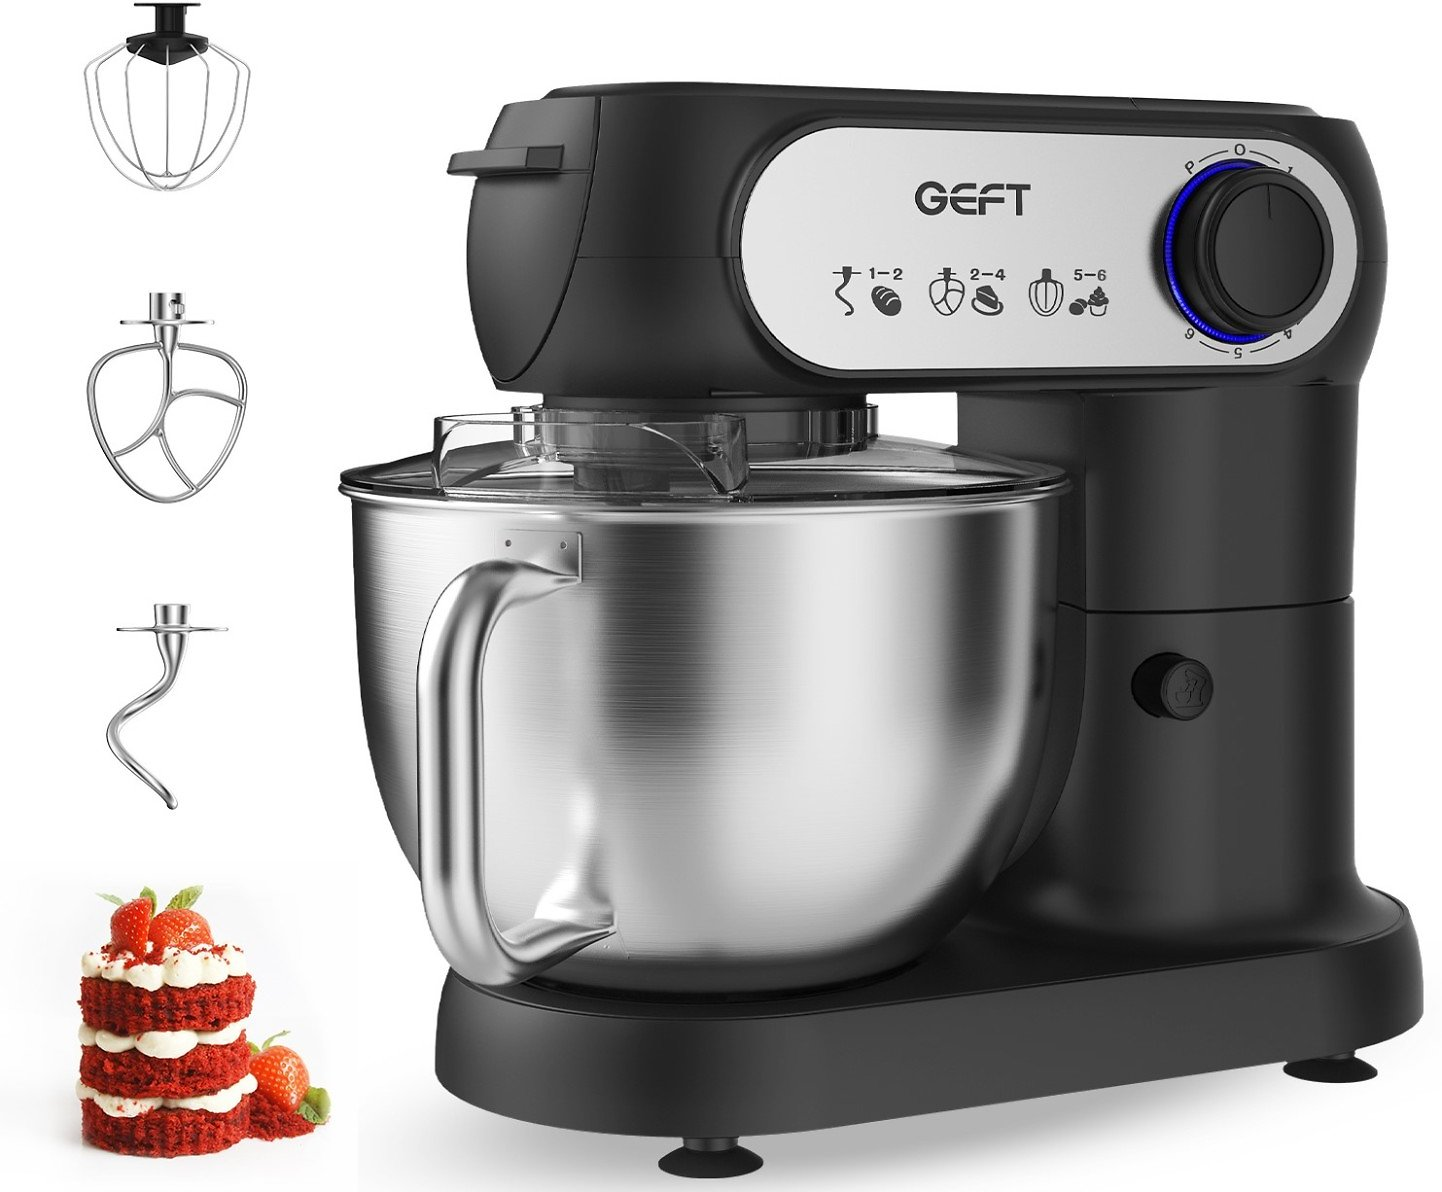 $40 Off GEFT 5.8QT 600W 6-Speed Electric Stand Mixer